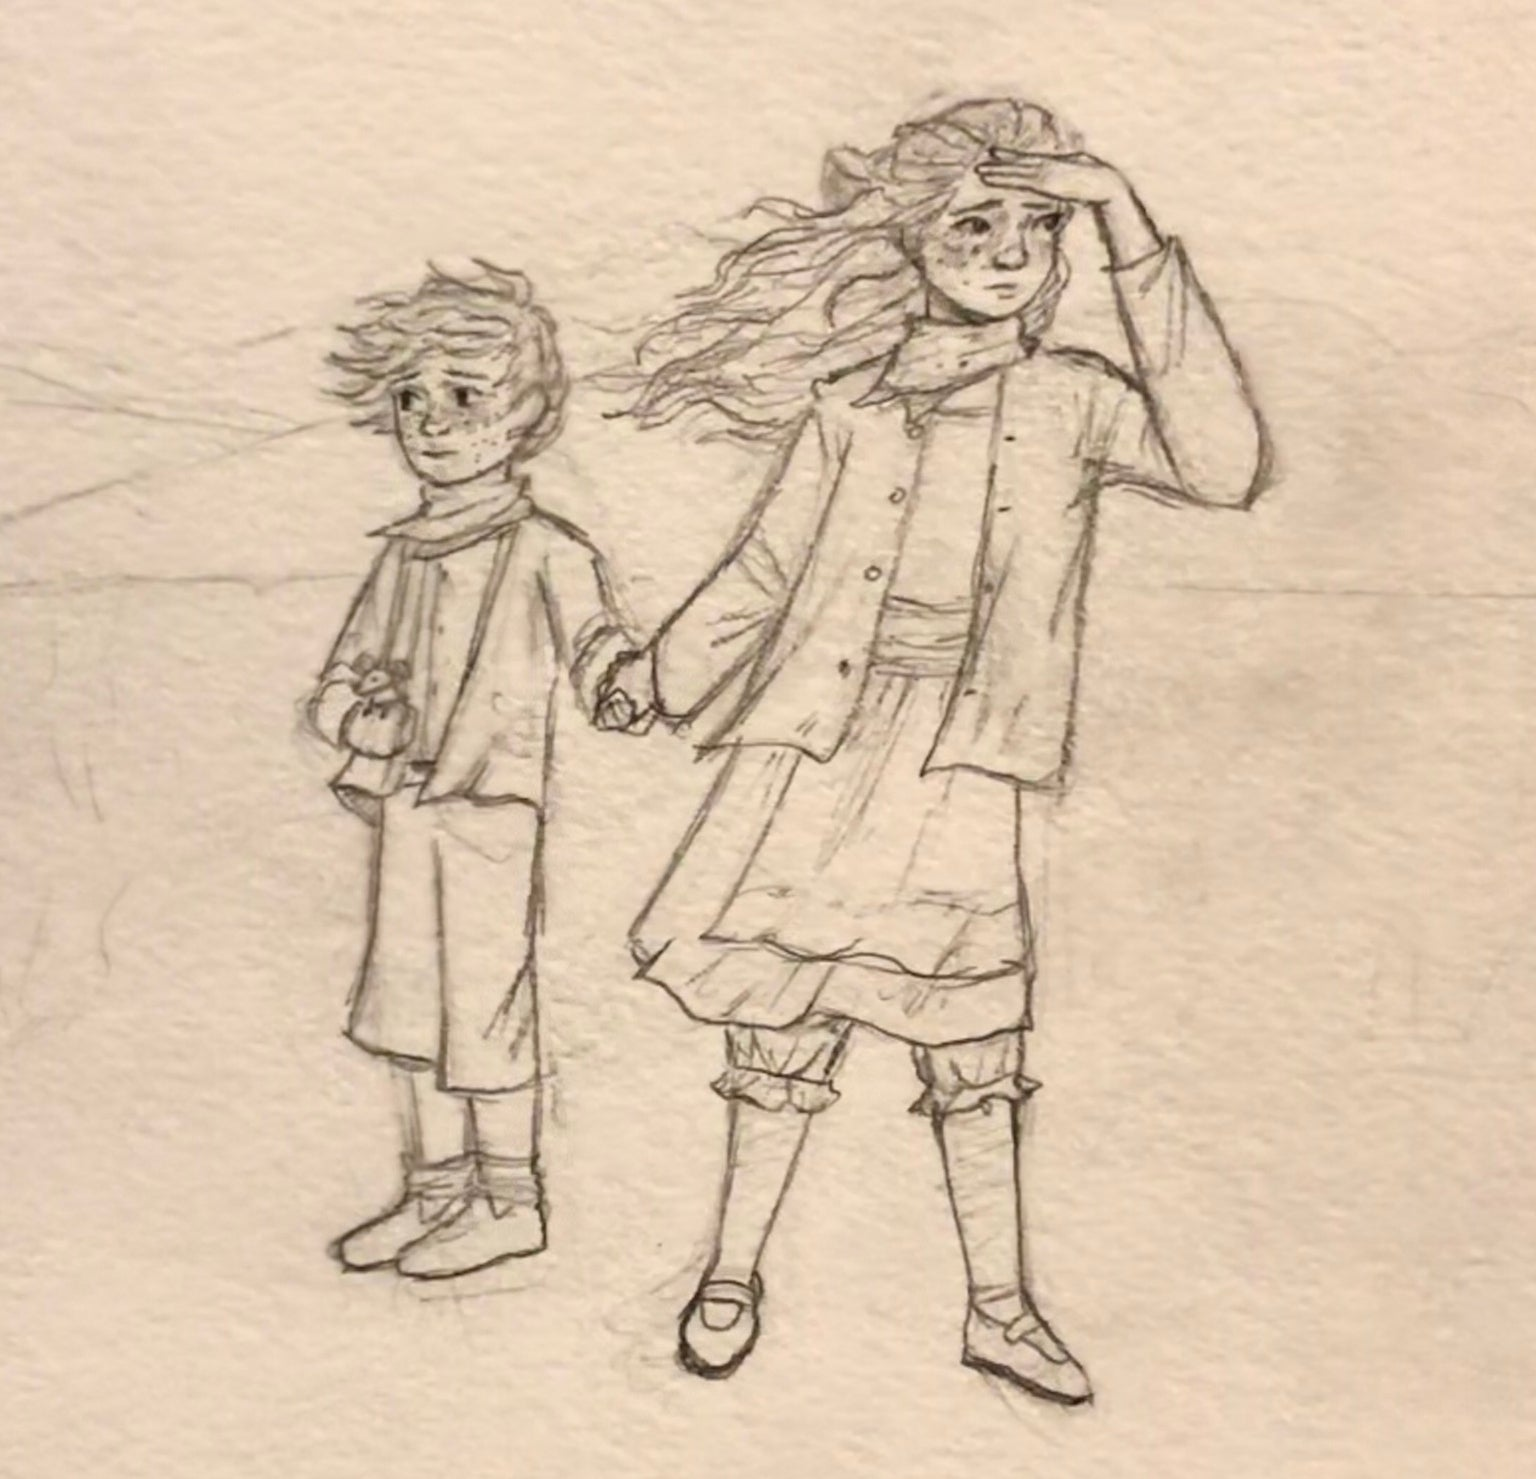 Pencil illustration of Elfa and Holgar